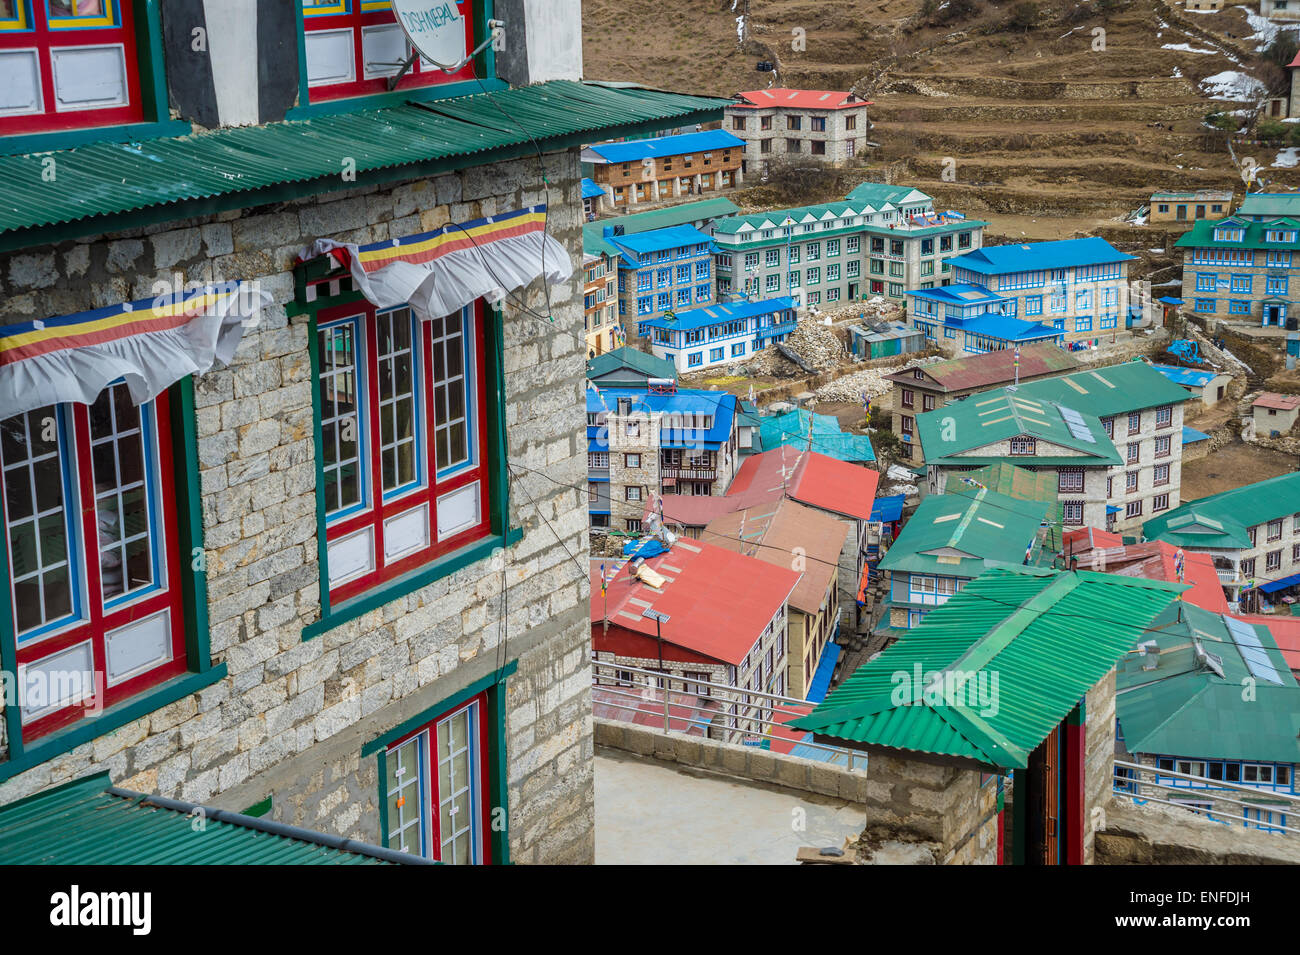 Namche Bazaar, Nepal - 16 March 2015: Aerial view of Namche Bazaar in the Everest Region of Nepal - Stock Image